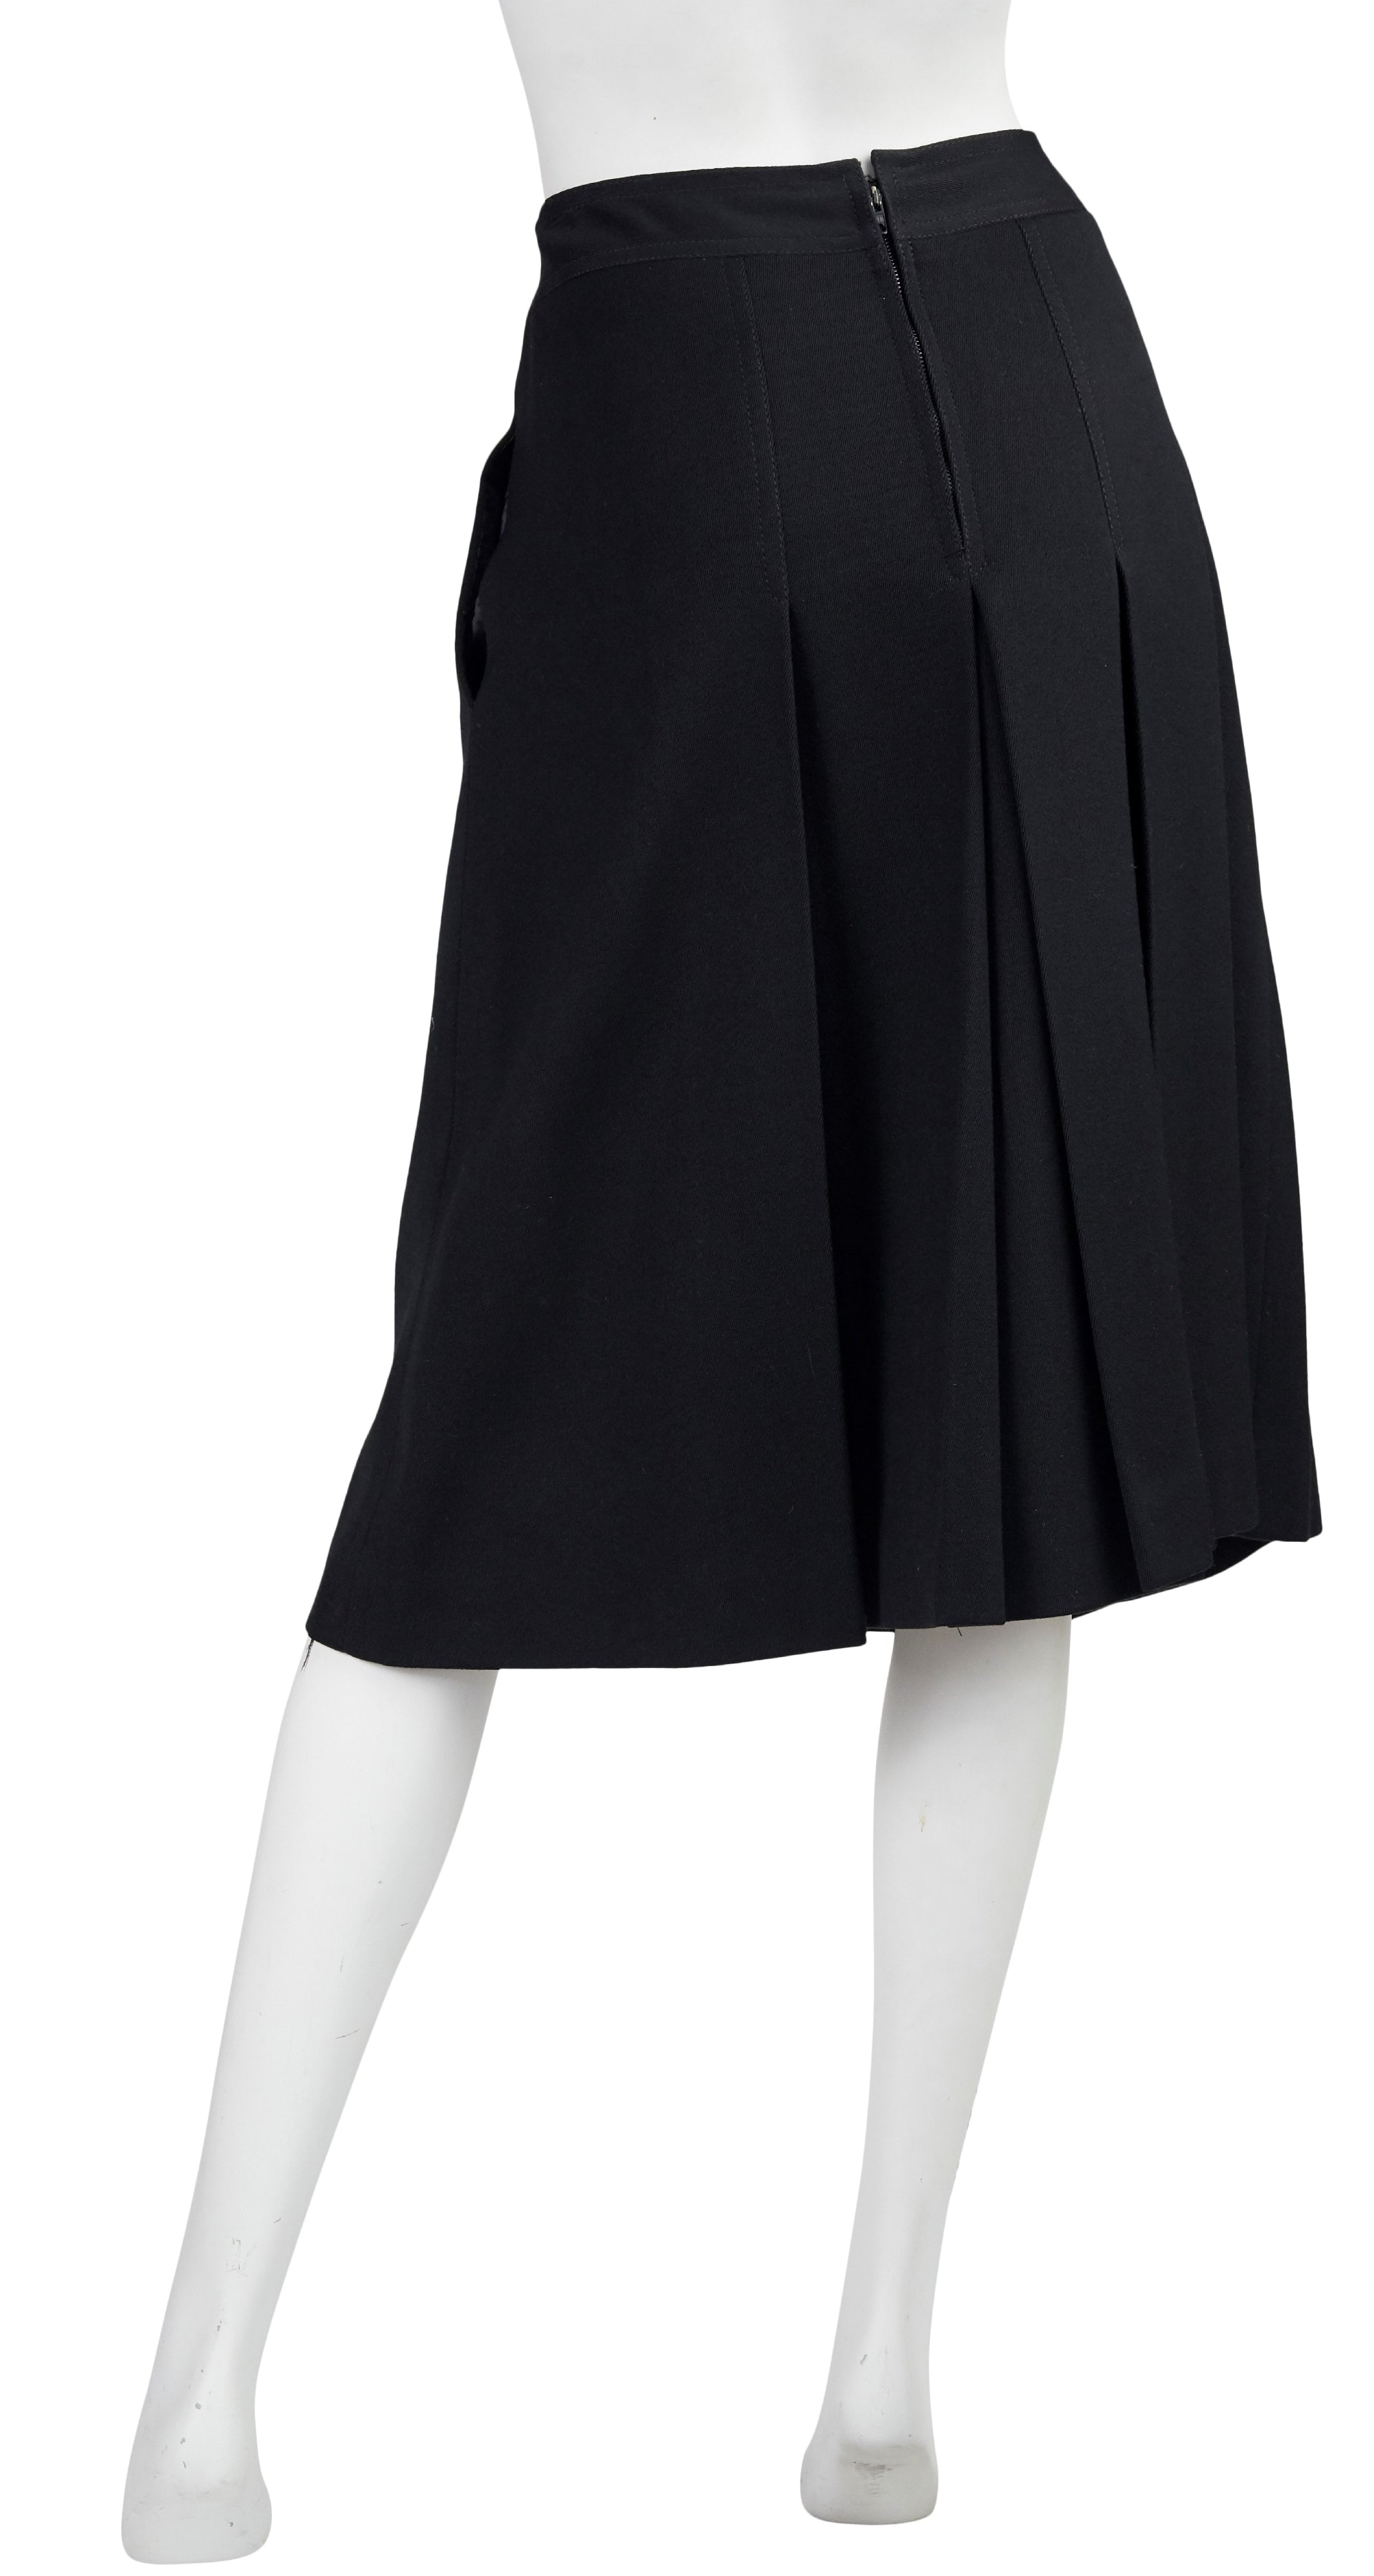 1970s Horsebit Black Wool Pleated Skirt